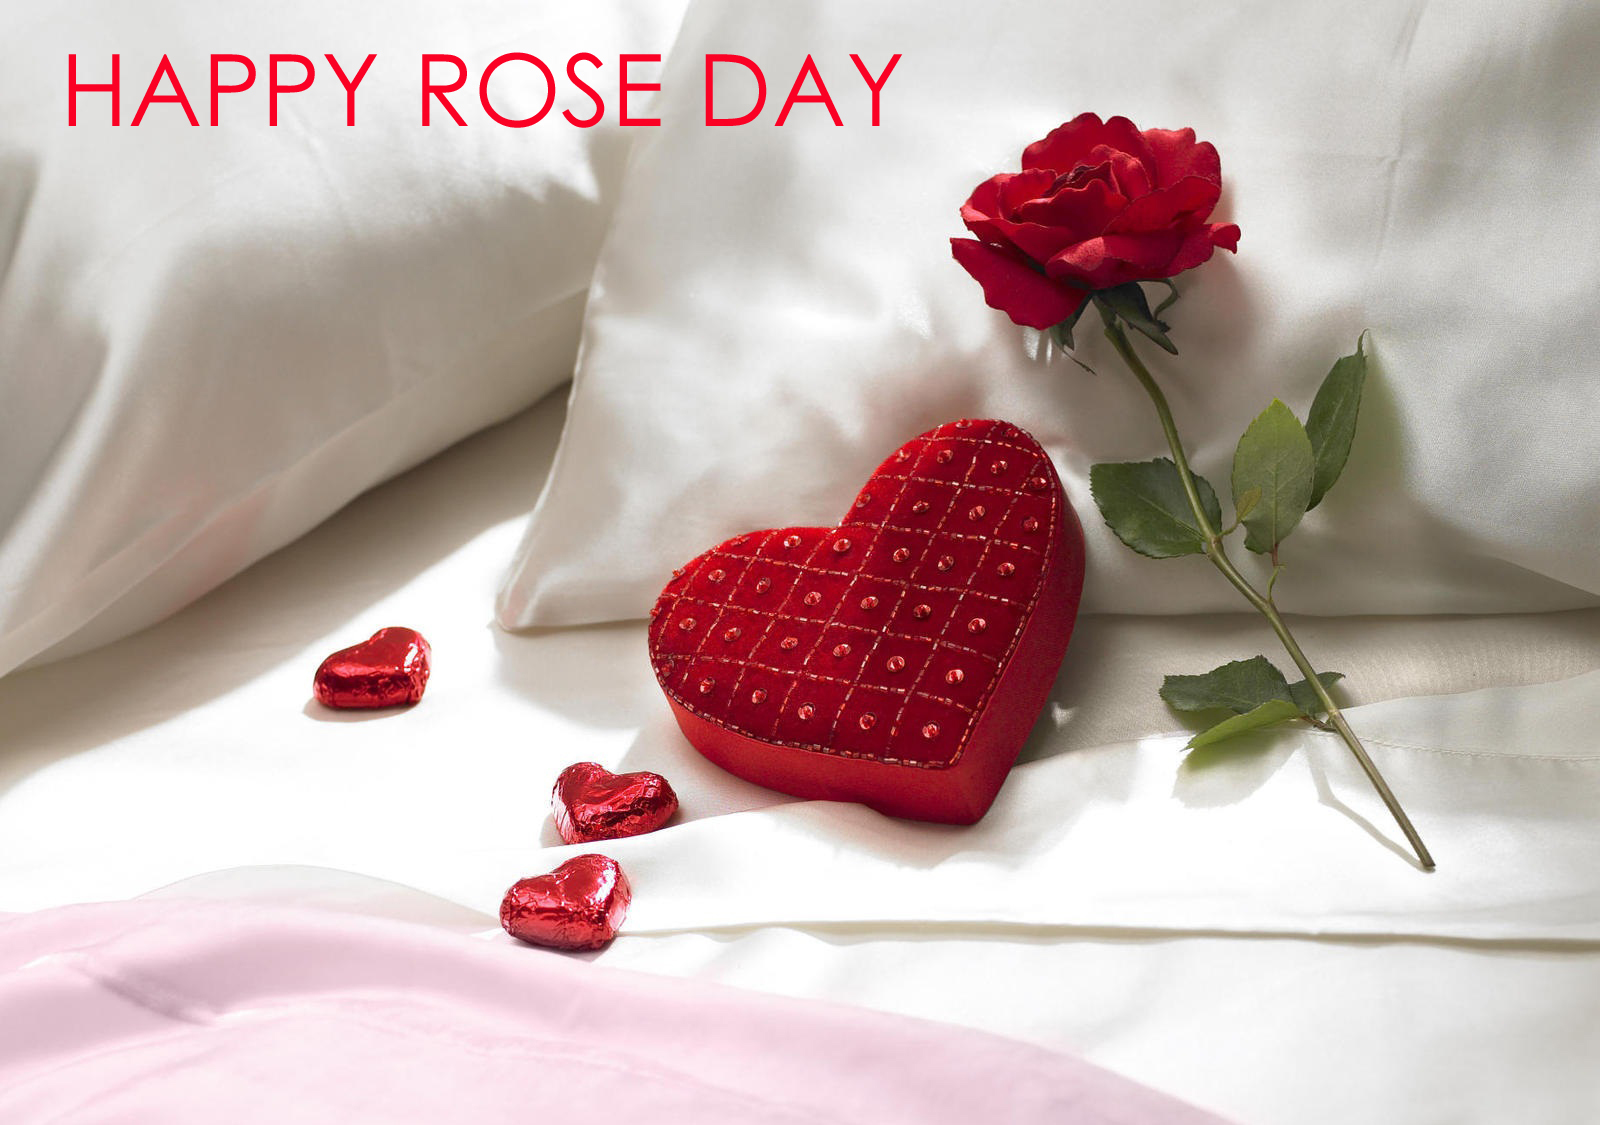 Happy Rose Day 2018 HD Image For Best Friend